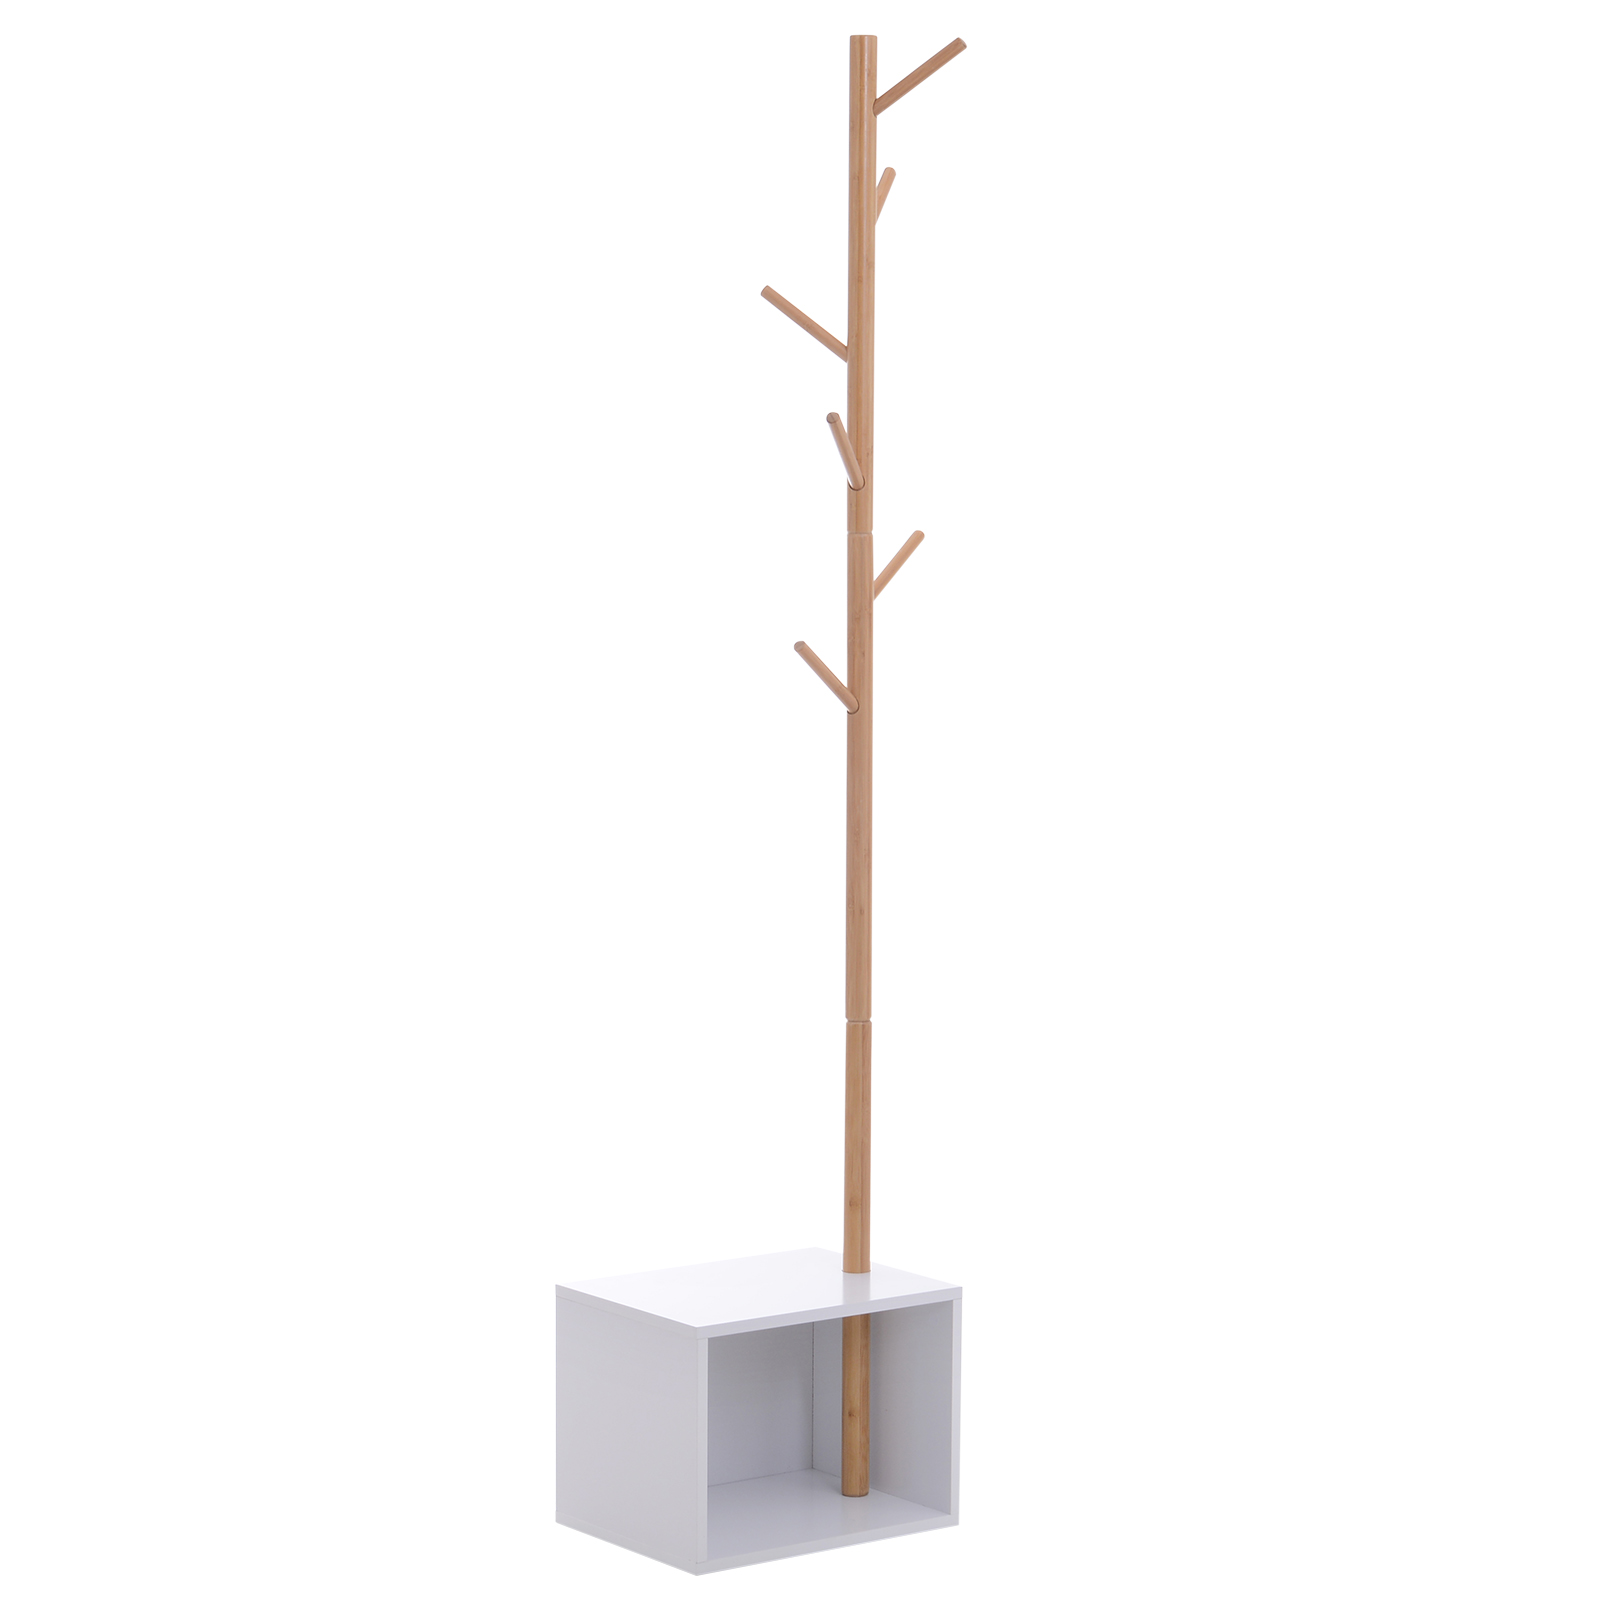 HOMCOM Hanger With Bench Cube For Shoes 6 Hooks Input And Bedroom Bamboo Wood MDF 40x30x180cm